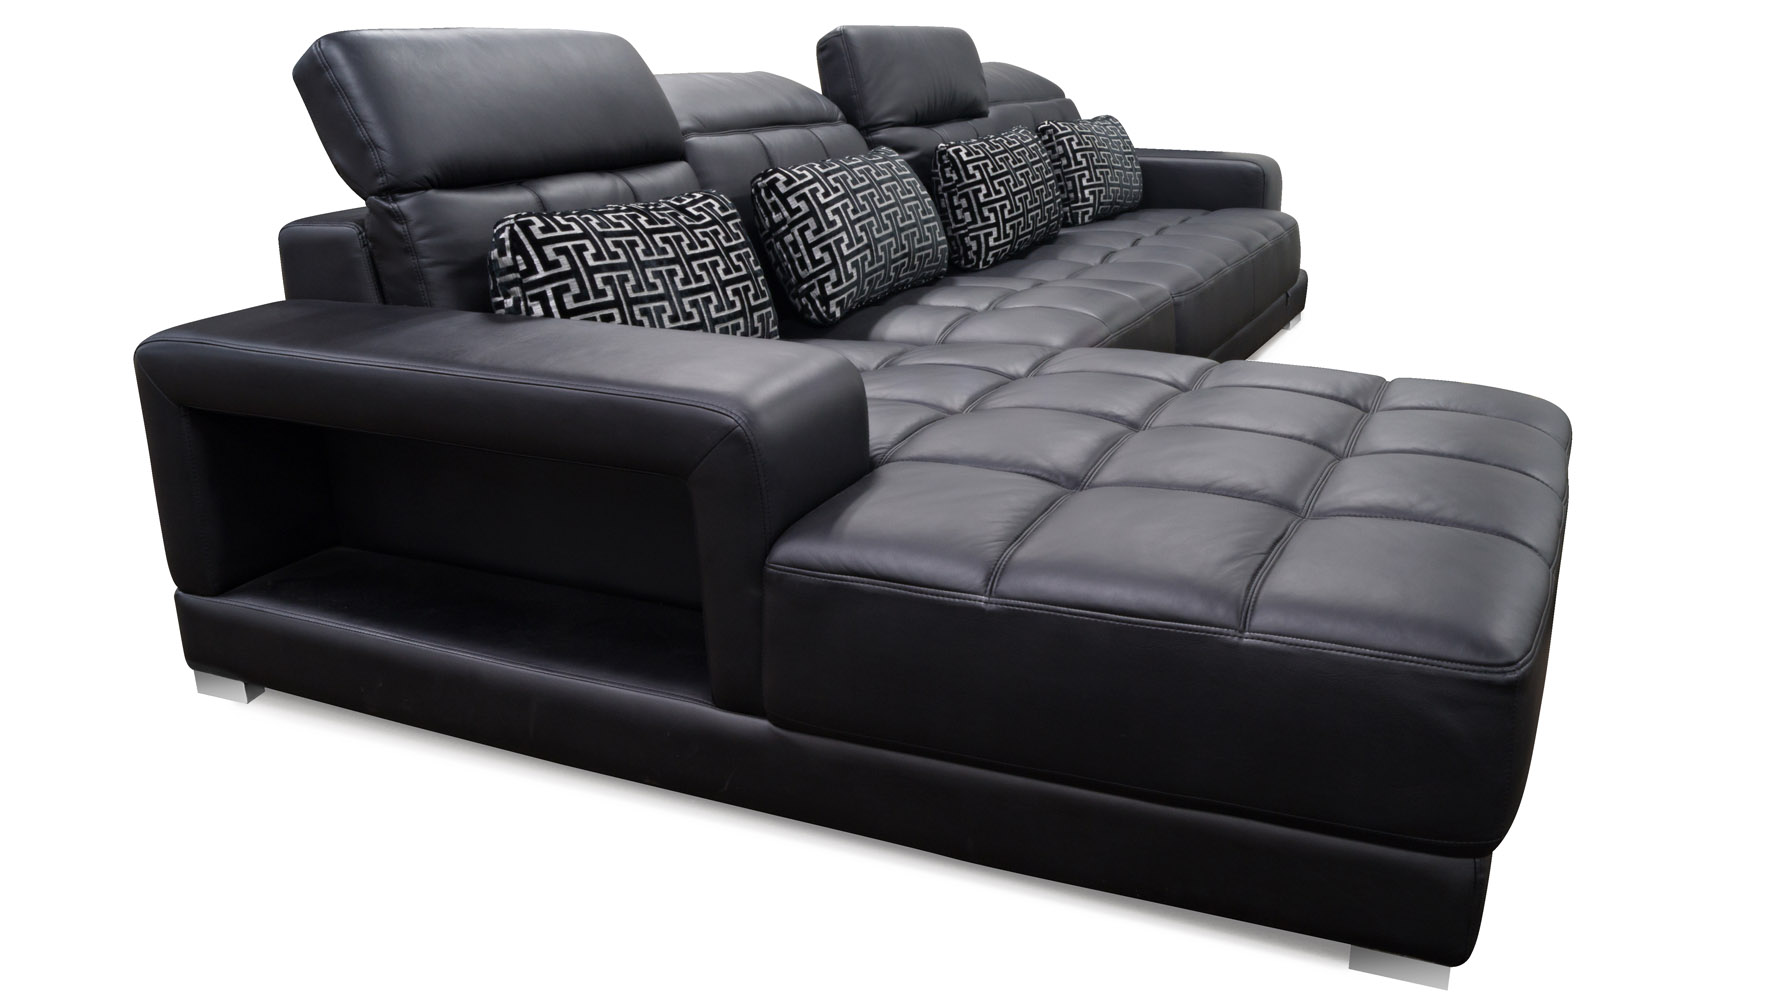 Conrad black leather sectional zuri furniture for Black leather chaise sofa